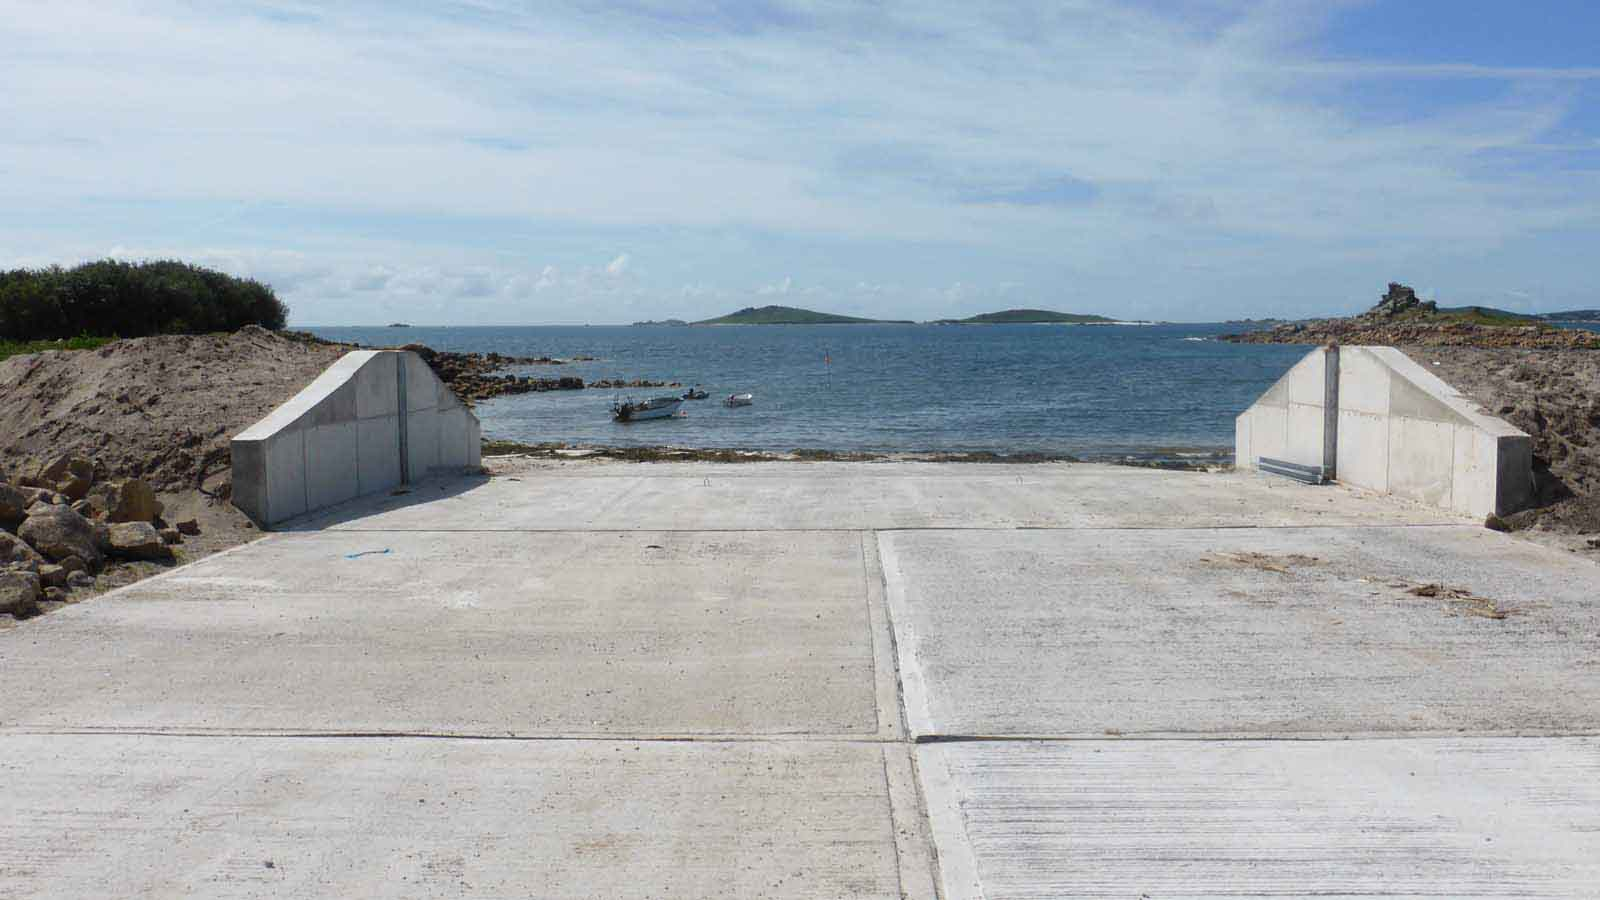 St Mary's Harbourmaster Dale Clark On The New Porthloo Boat Park